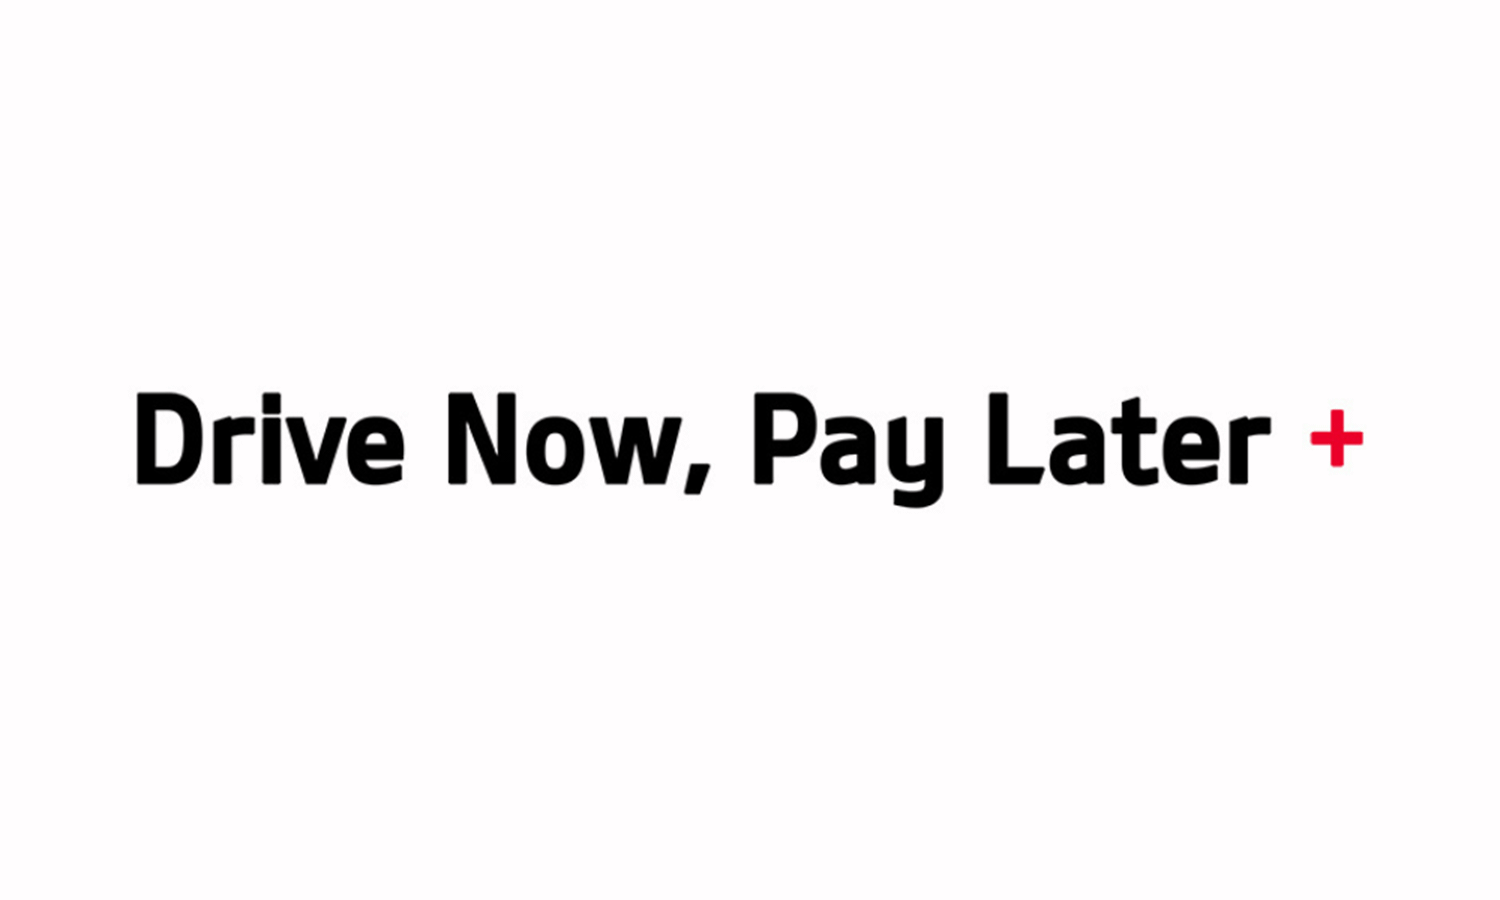 Kia Drive Now, Pay Later